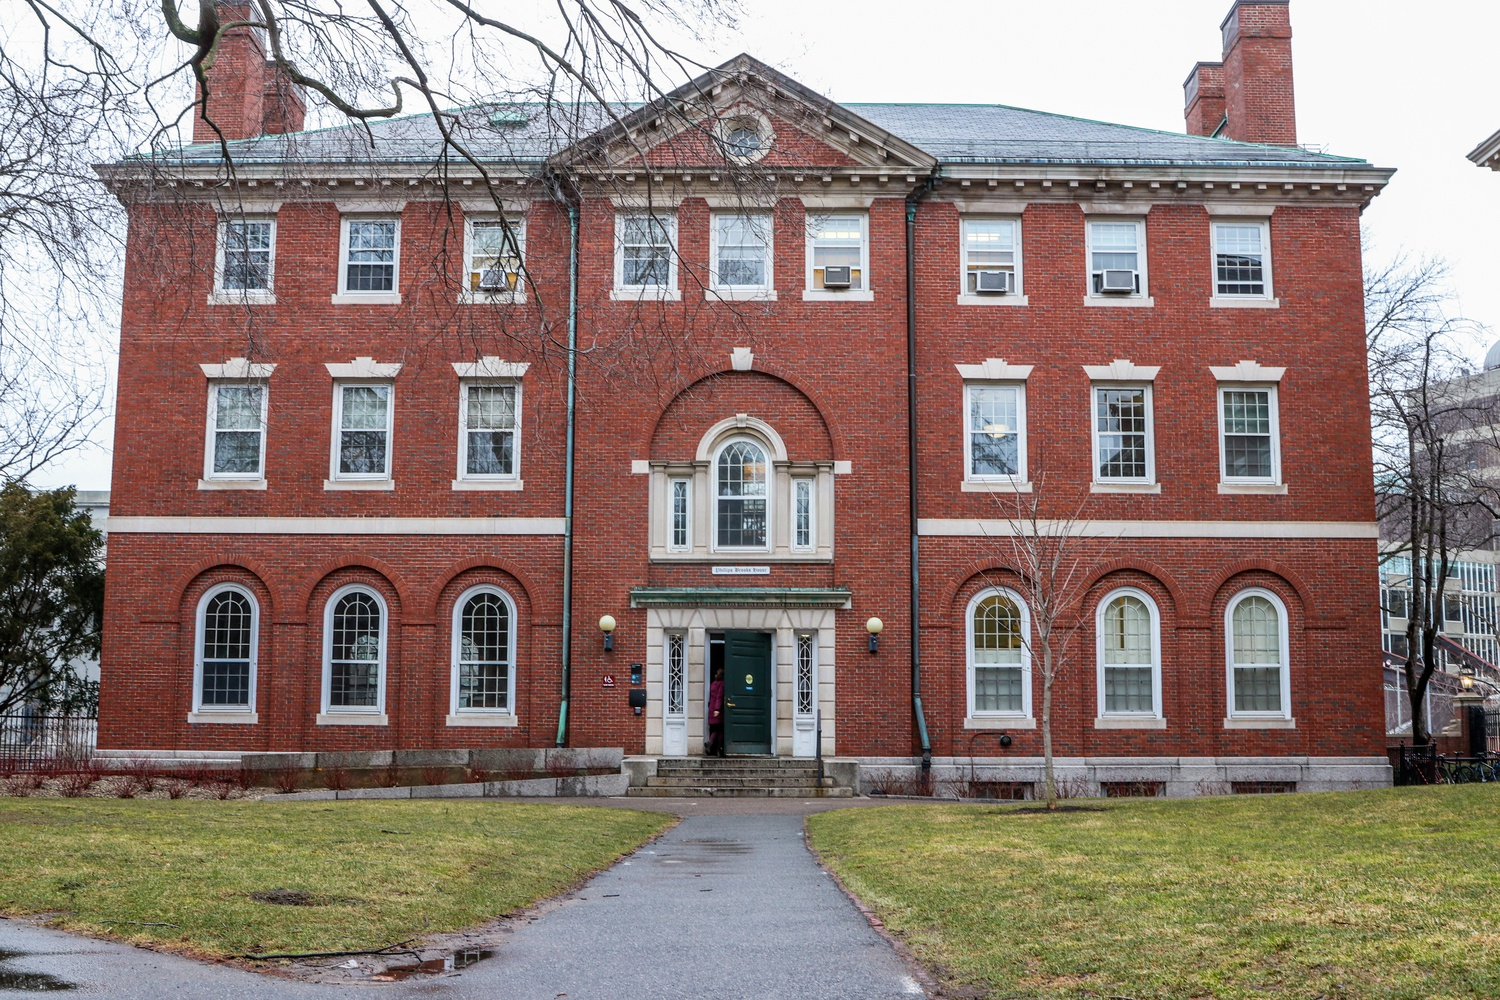 The Harvard Jewish Coalition for Peace, which will hold its first meeting in the PBH Building, is a new anti-Zionist Jewish organization focusing on Palestinian solidarity work, fighting anti-Semitism through solidarity, and engaging with the history of radical Jews.